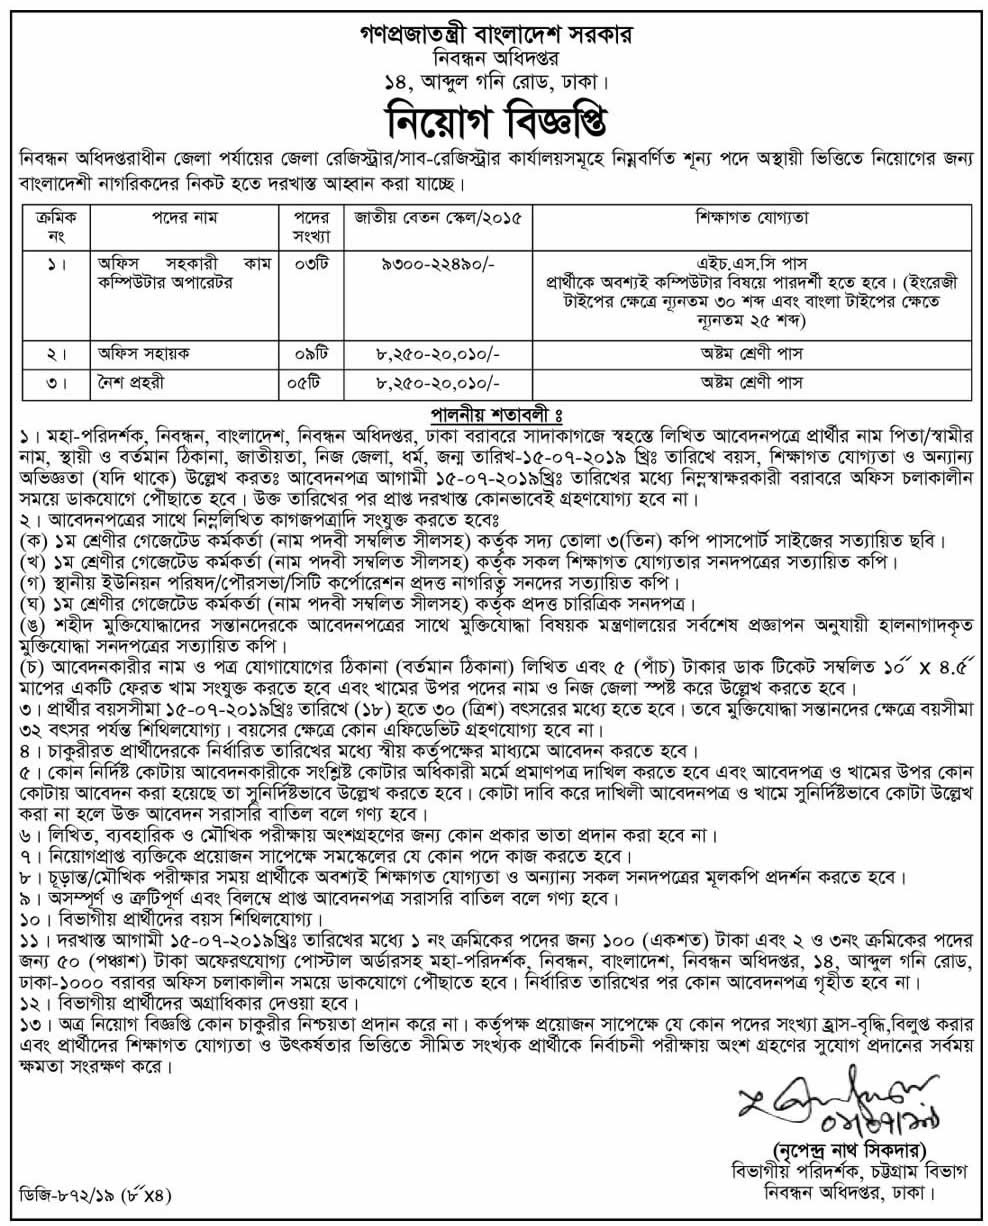 Directorate of Registration Job Circular 2019